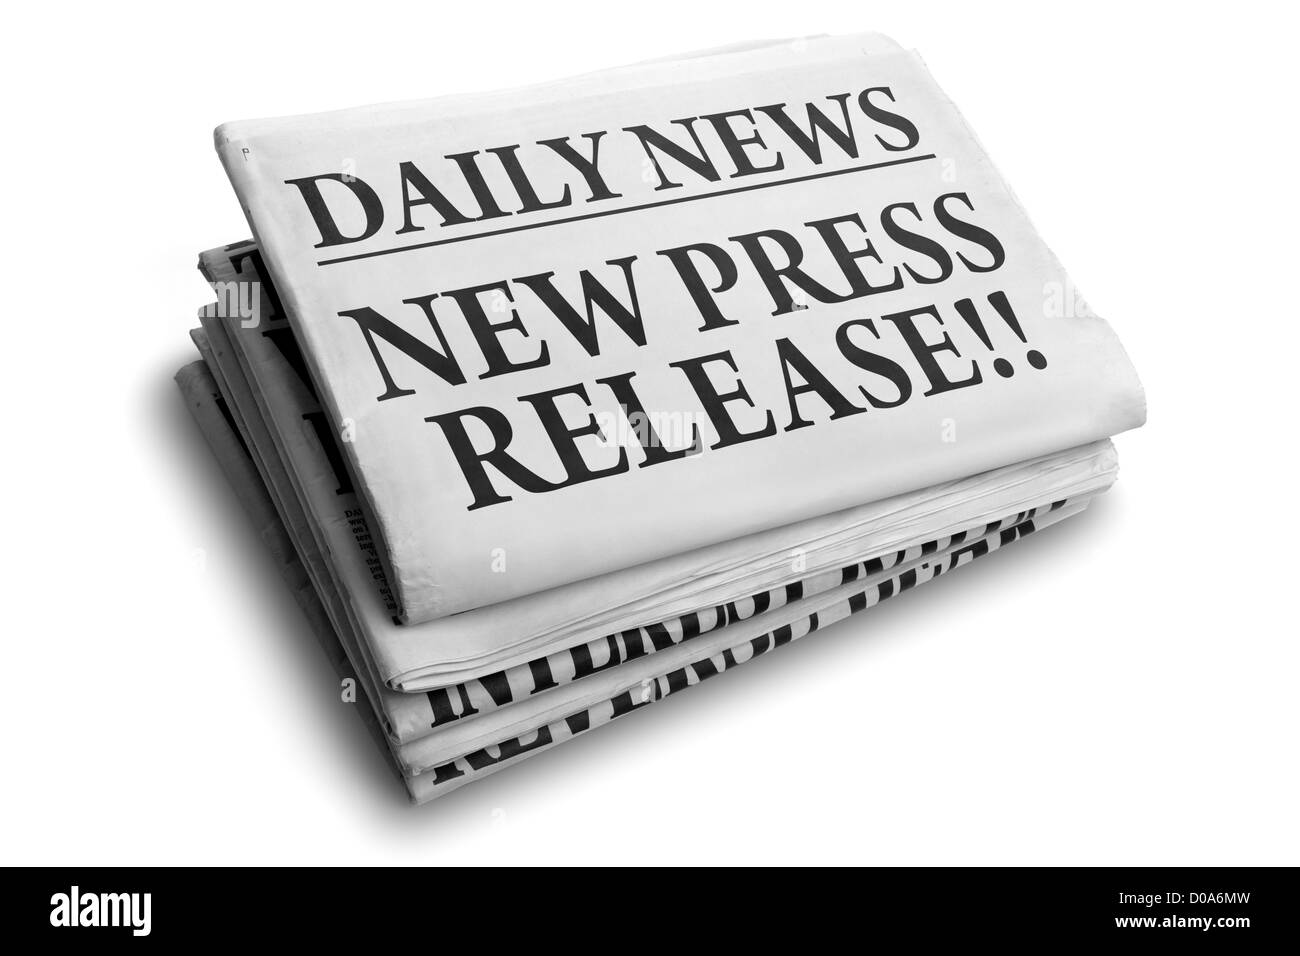 New press release daily newspaper headline - Stock Image